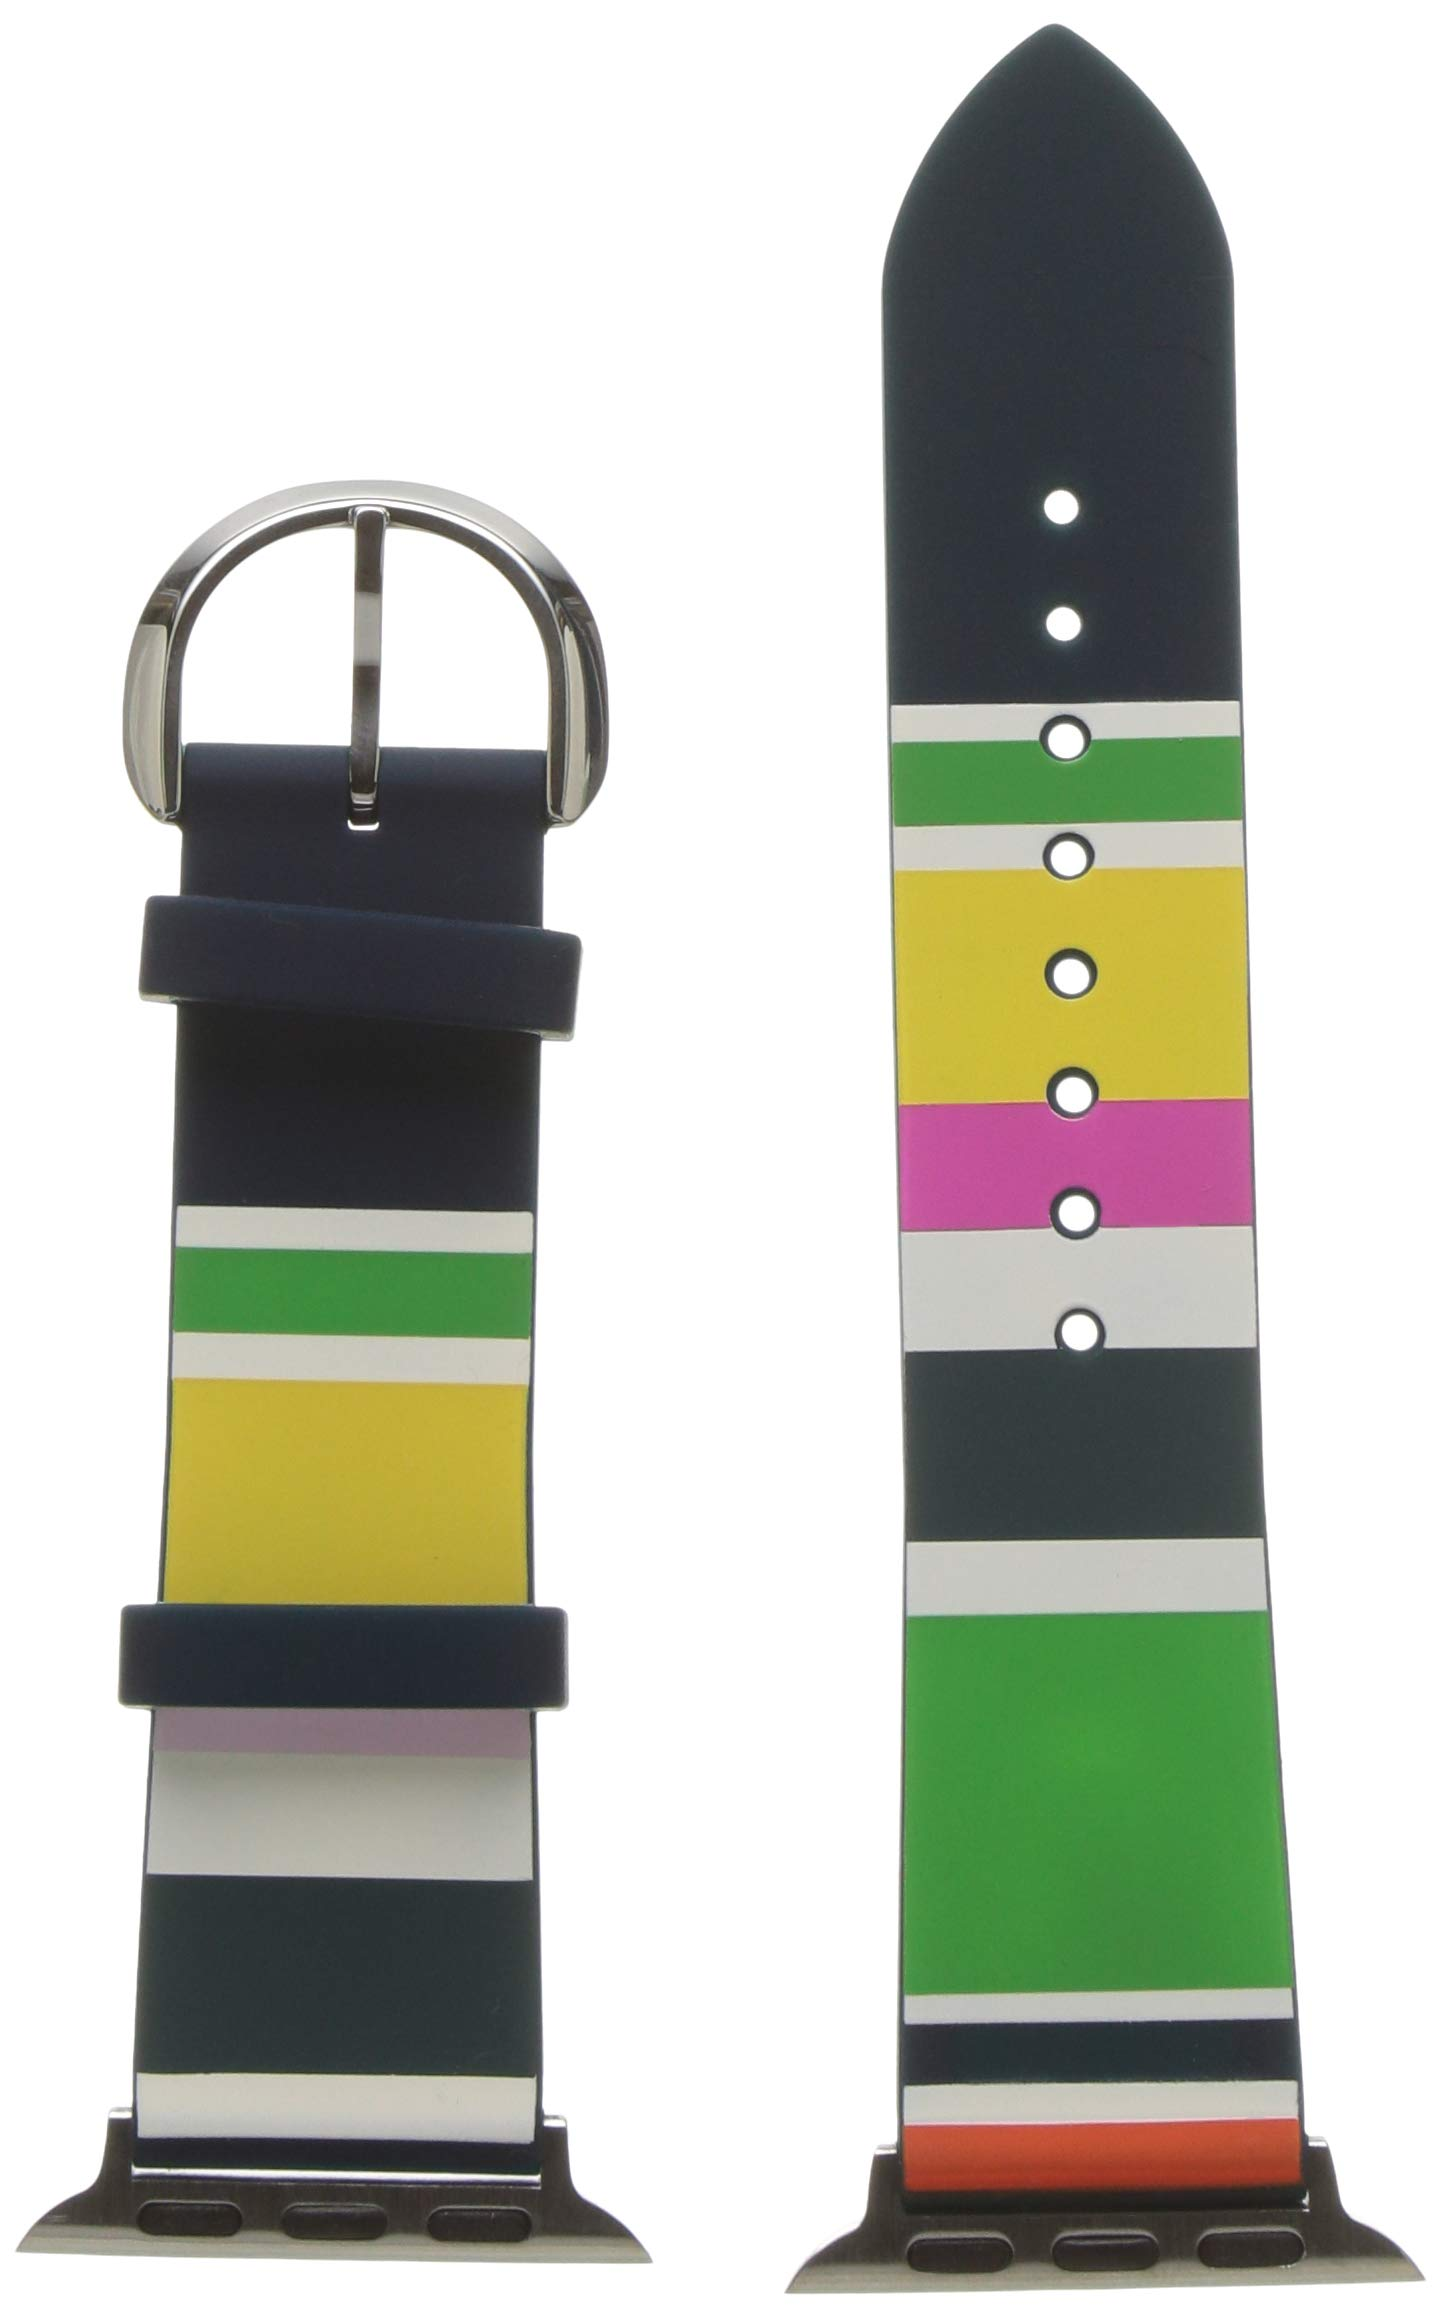 kate spade new york Apple Watch Band Multi-Colored Silicone 38/40mm Strap- KSS0029 Color: Multicolor by Kate Spade New York